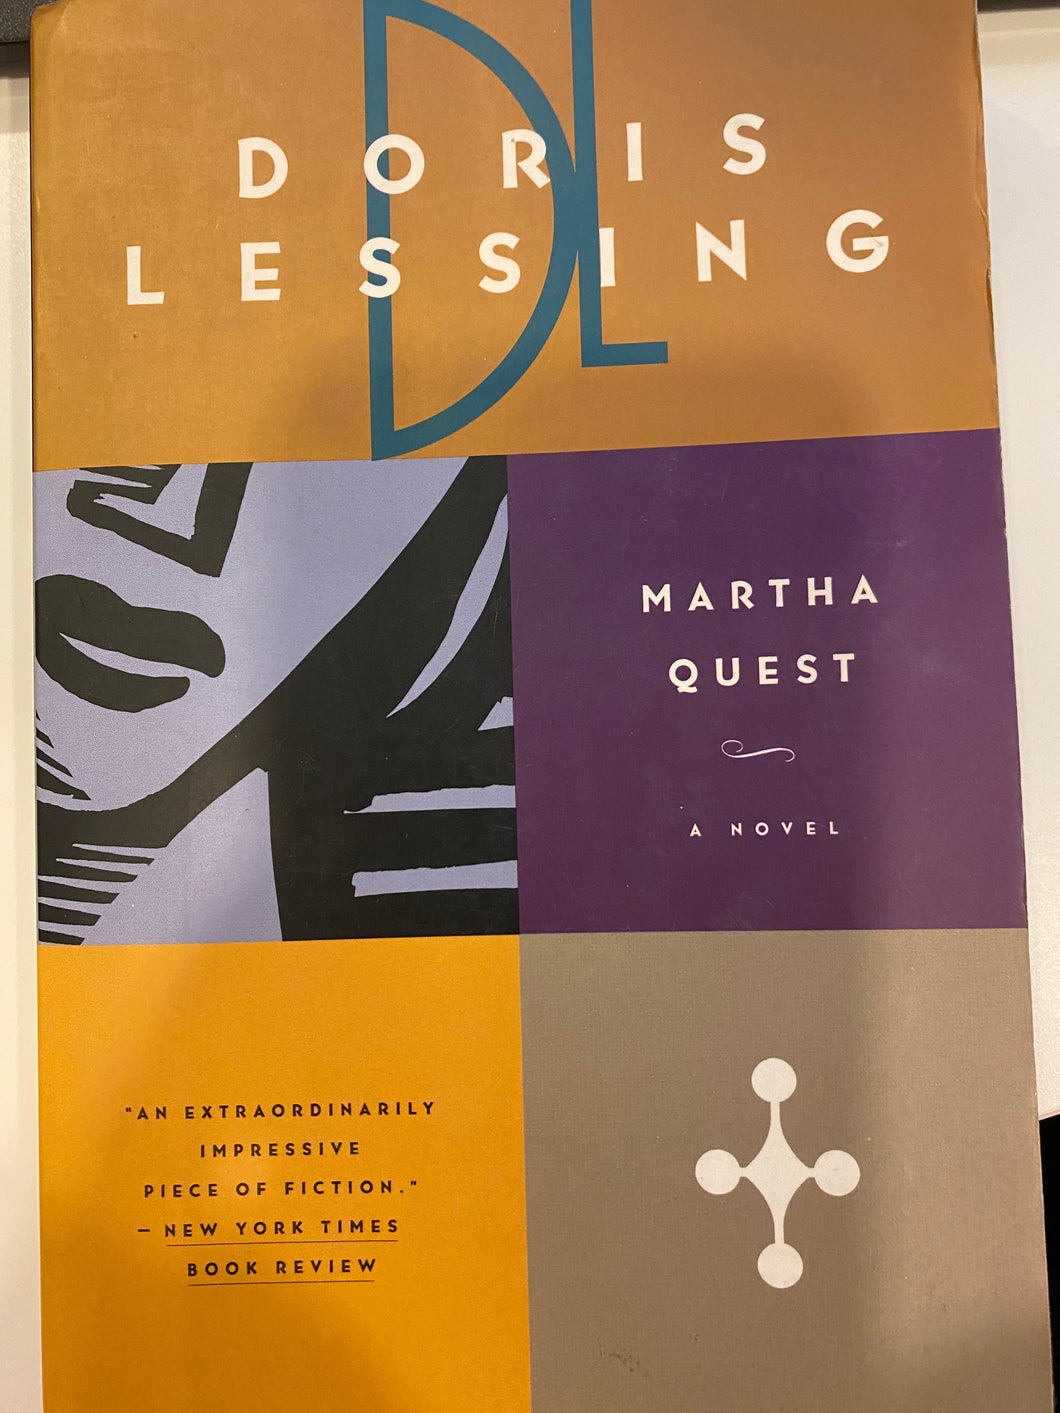 Martha Quest - Doris Lessing